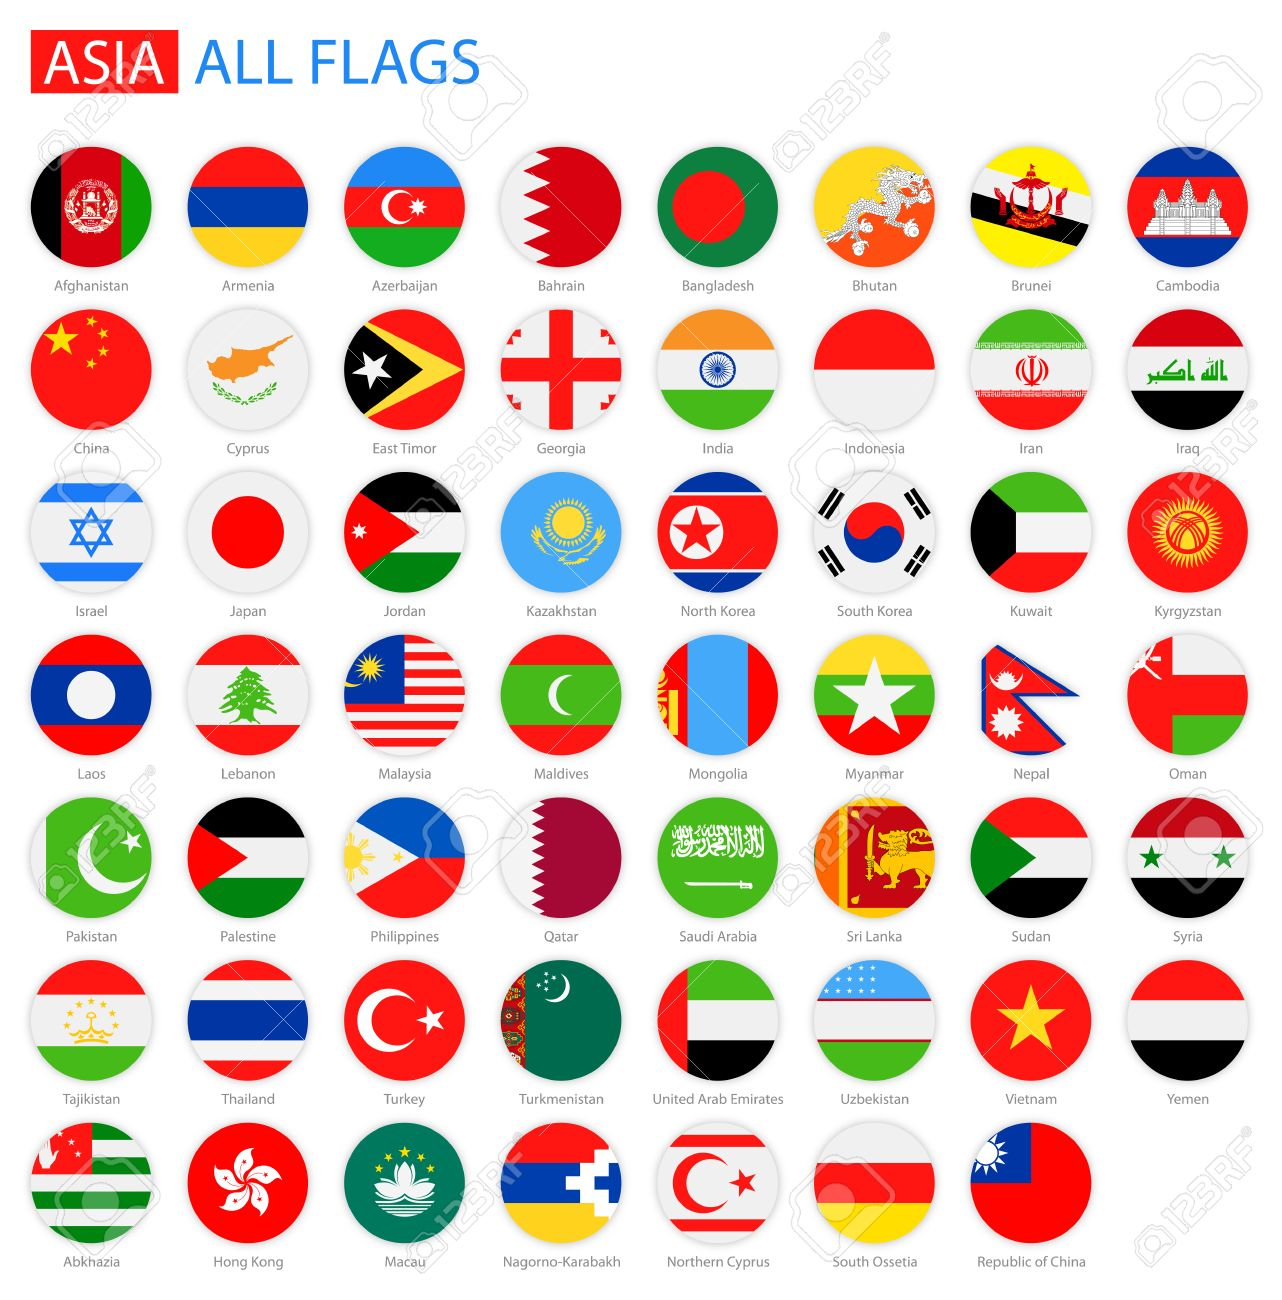 Flat Round Flags of Asia - Full Vector Collection. Vector Set of Flat Asian Flags. - 51014031